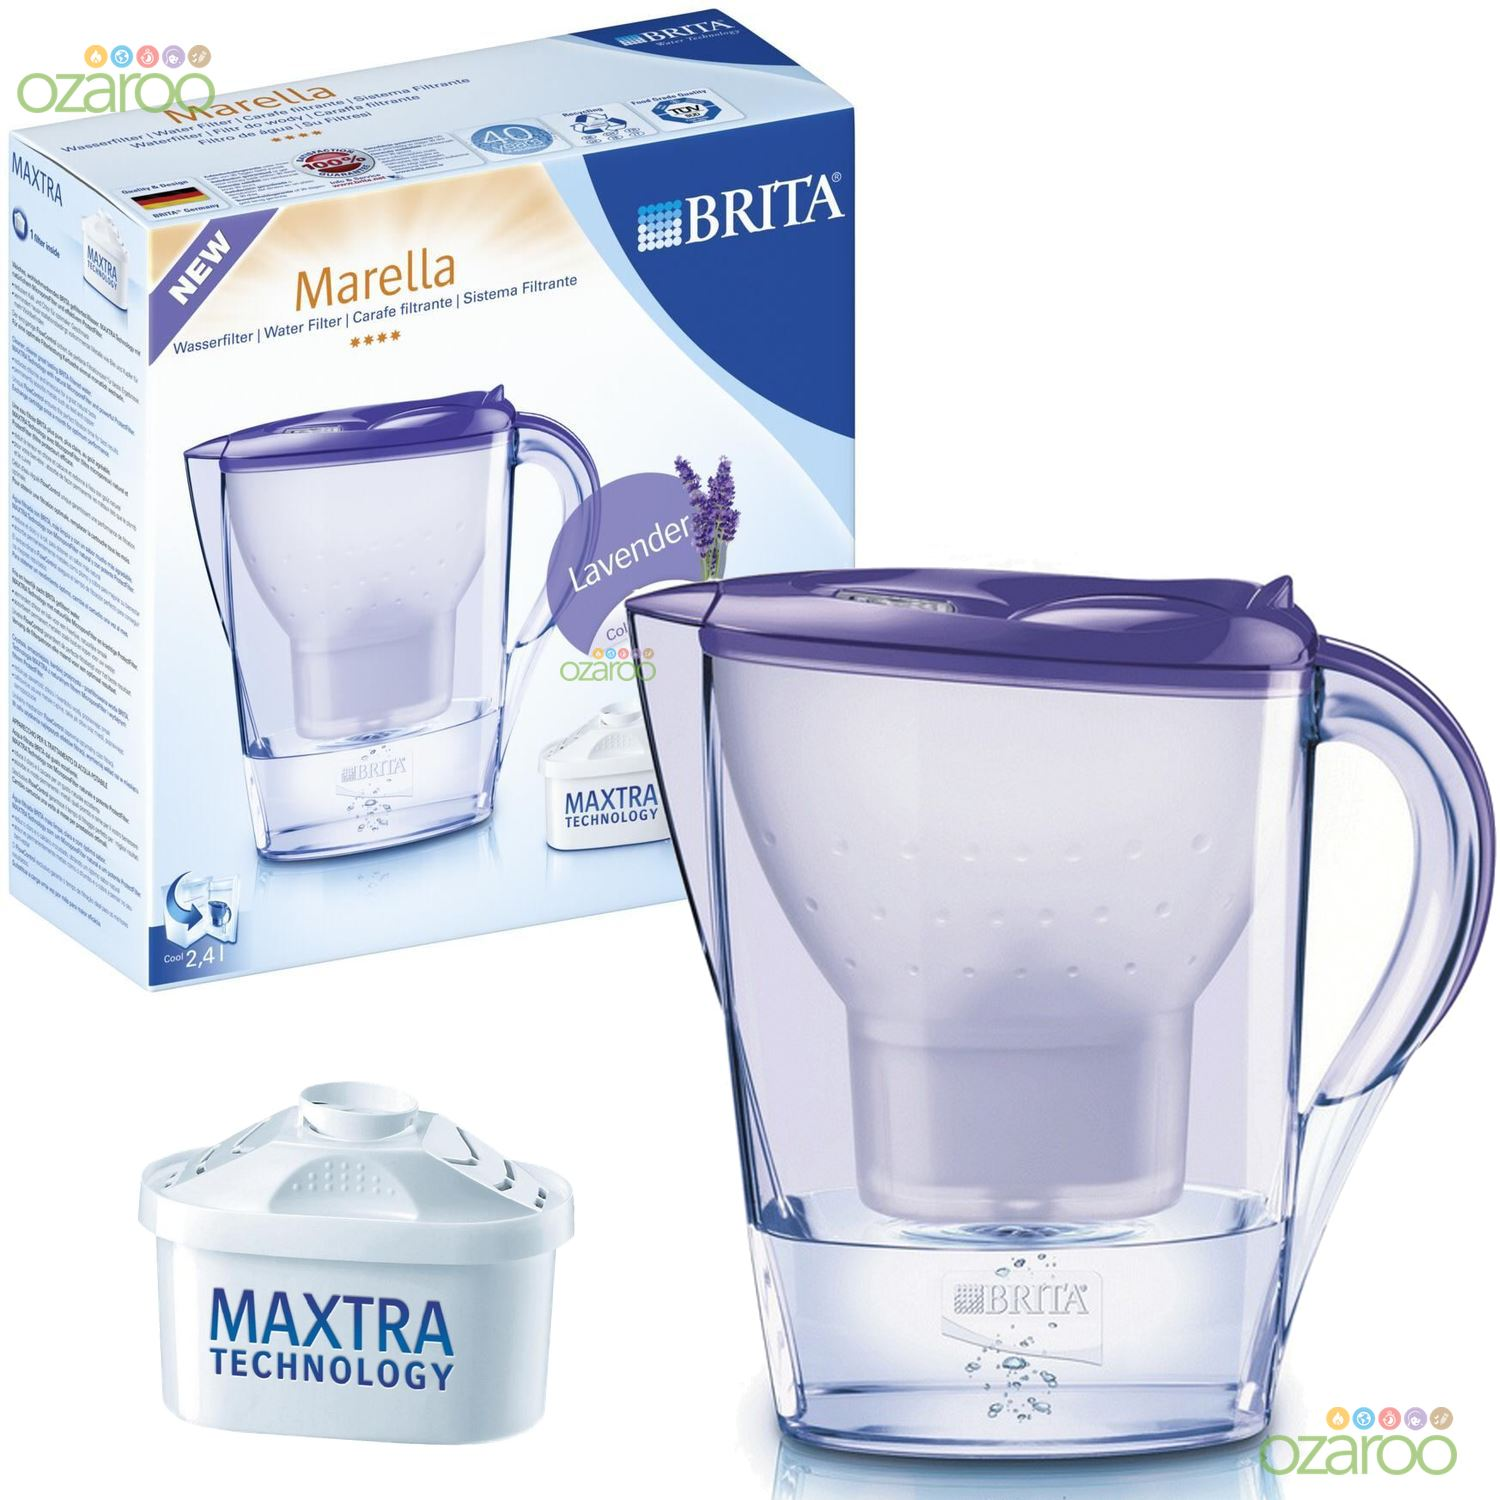 brita colour edition marella water filter jug 3 maxtra. Black Bedroom Furniture Sets. Home Design Ideas